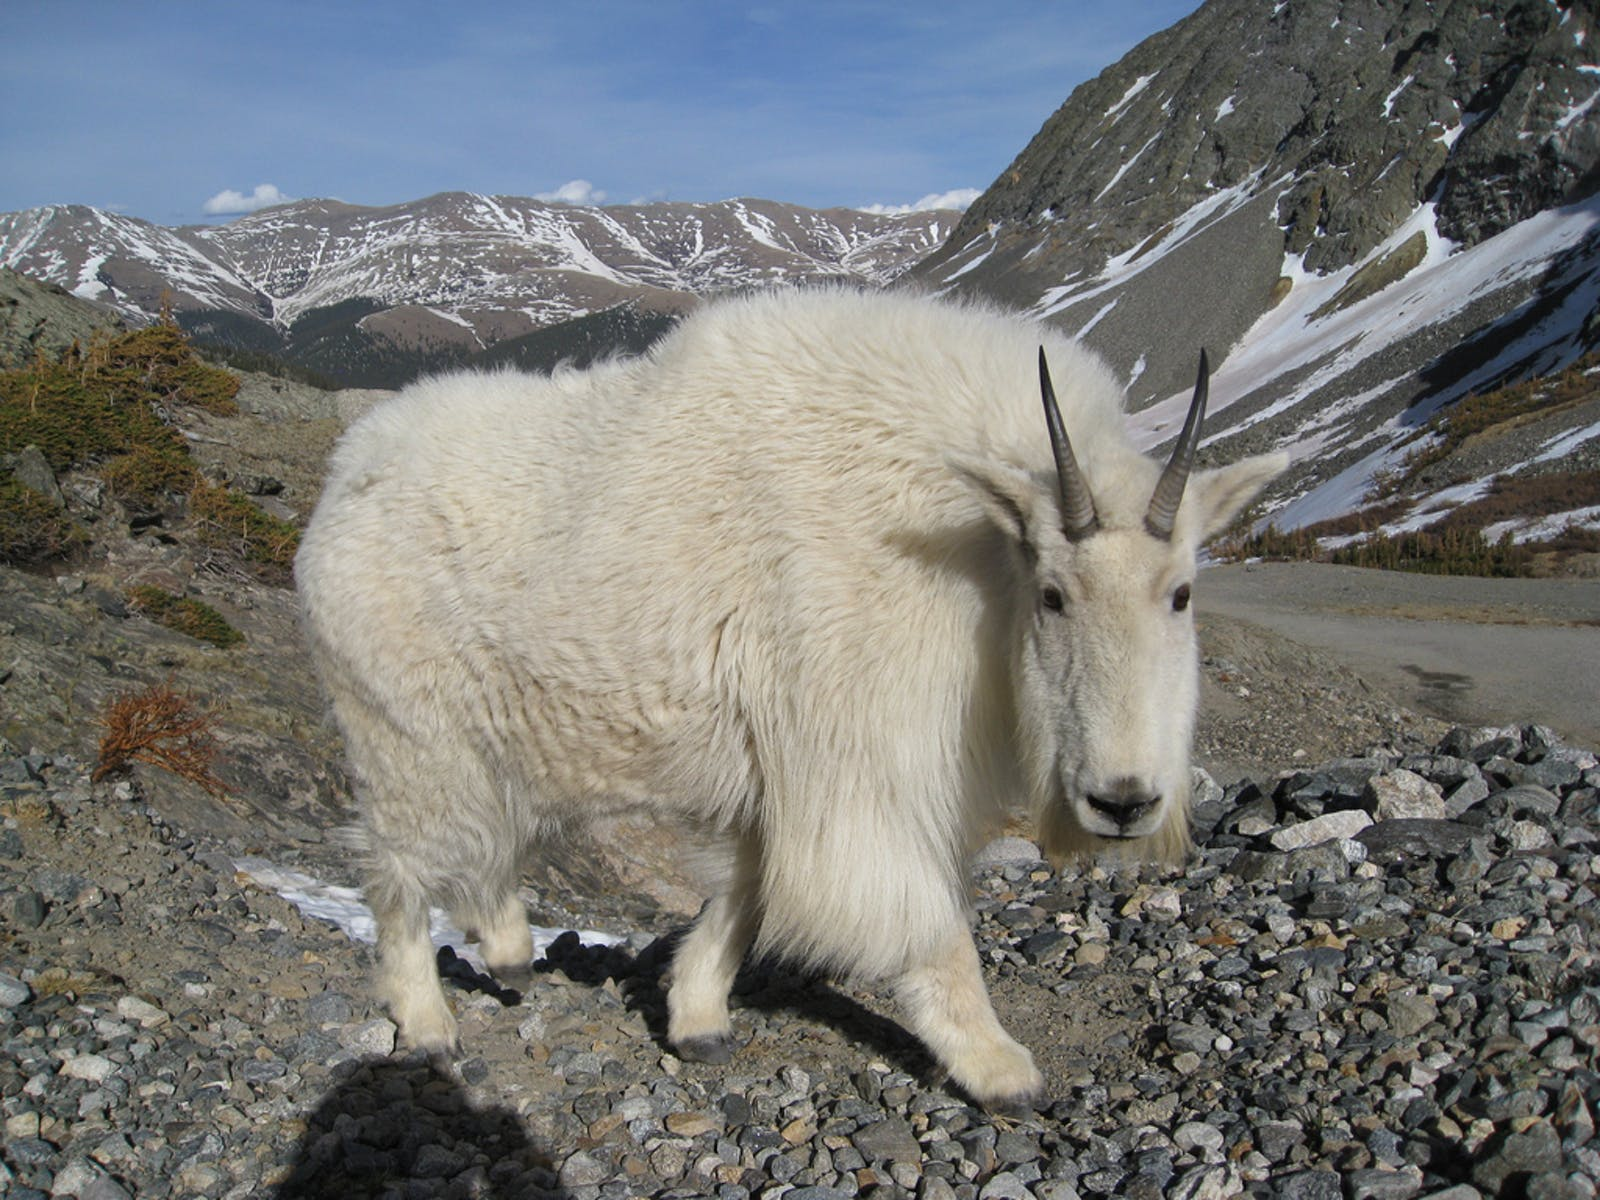 a close up photo of a Mountain goat on Quandary Peak